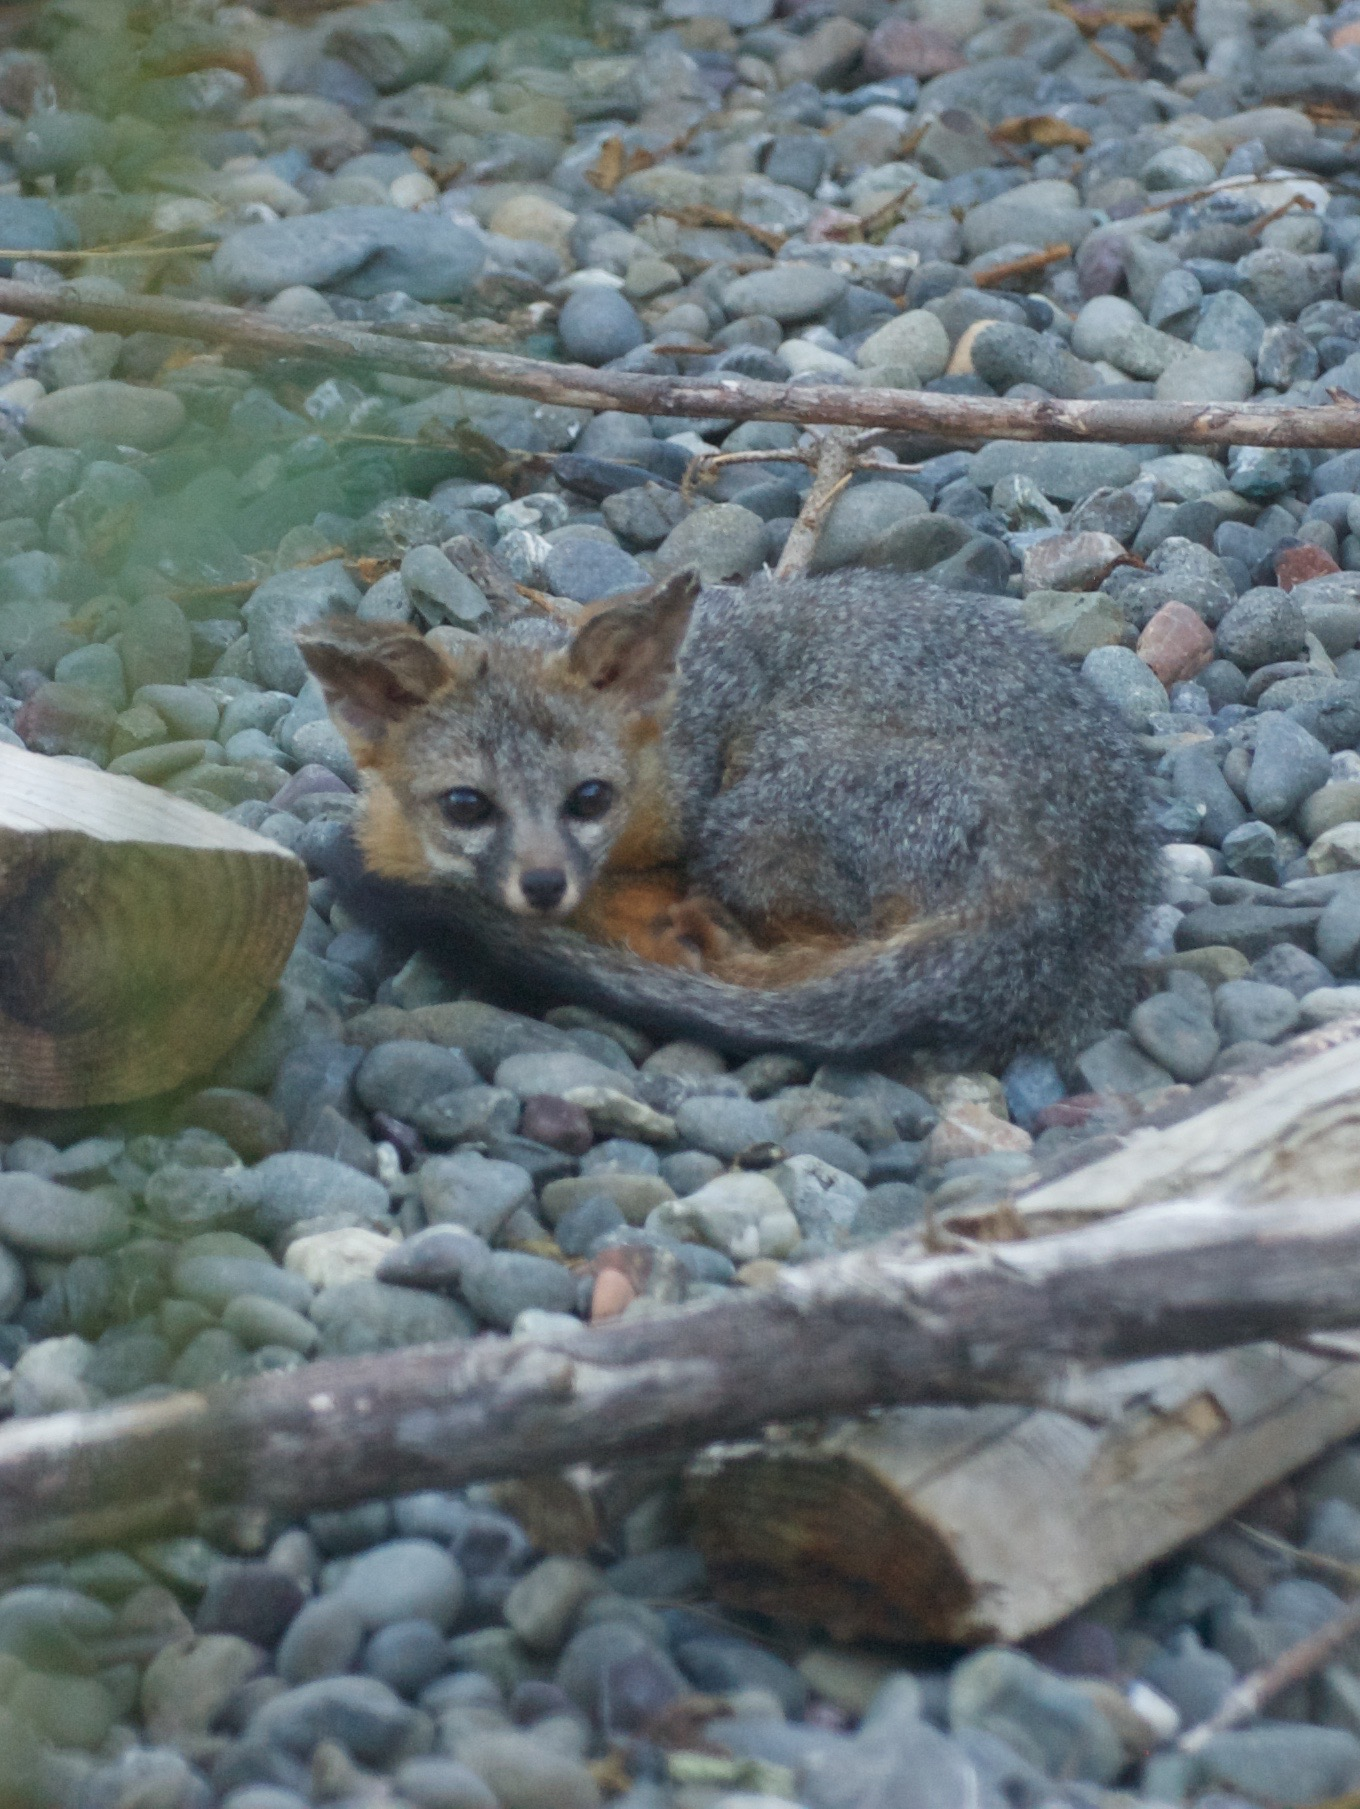 A Gray Fox recovers in care.